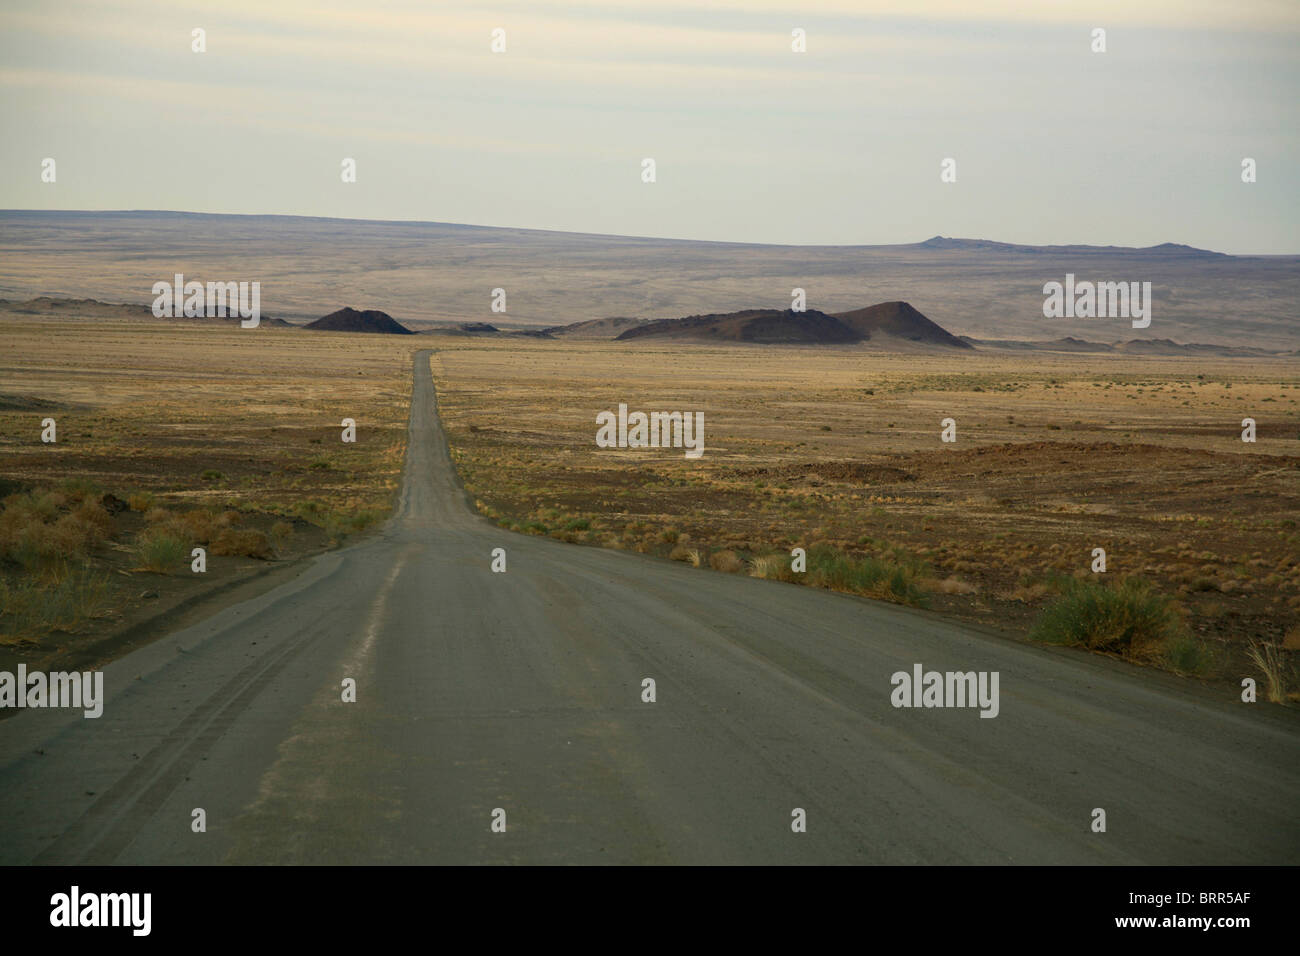 A dirt road running through a remote area stretches into the distance - Stock Image